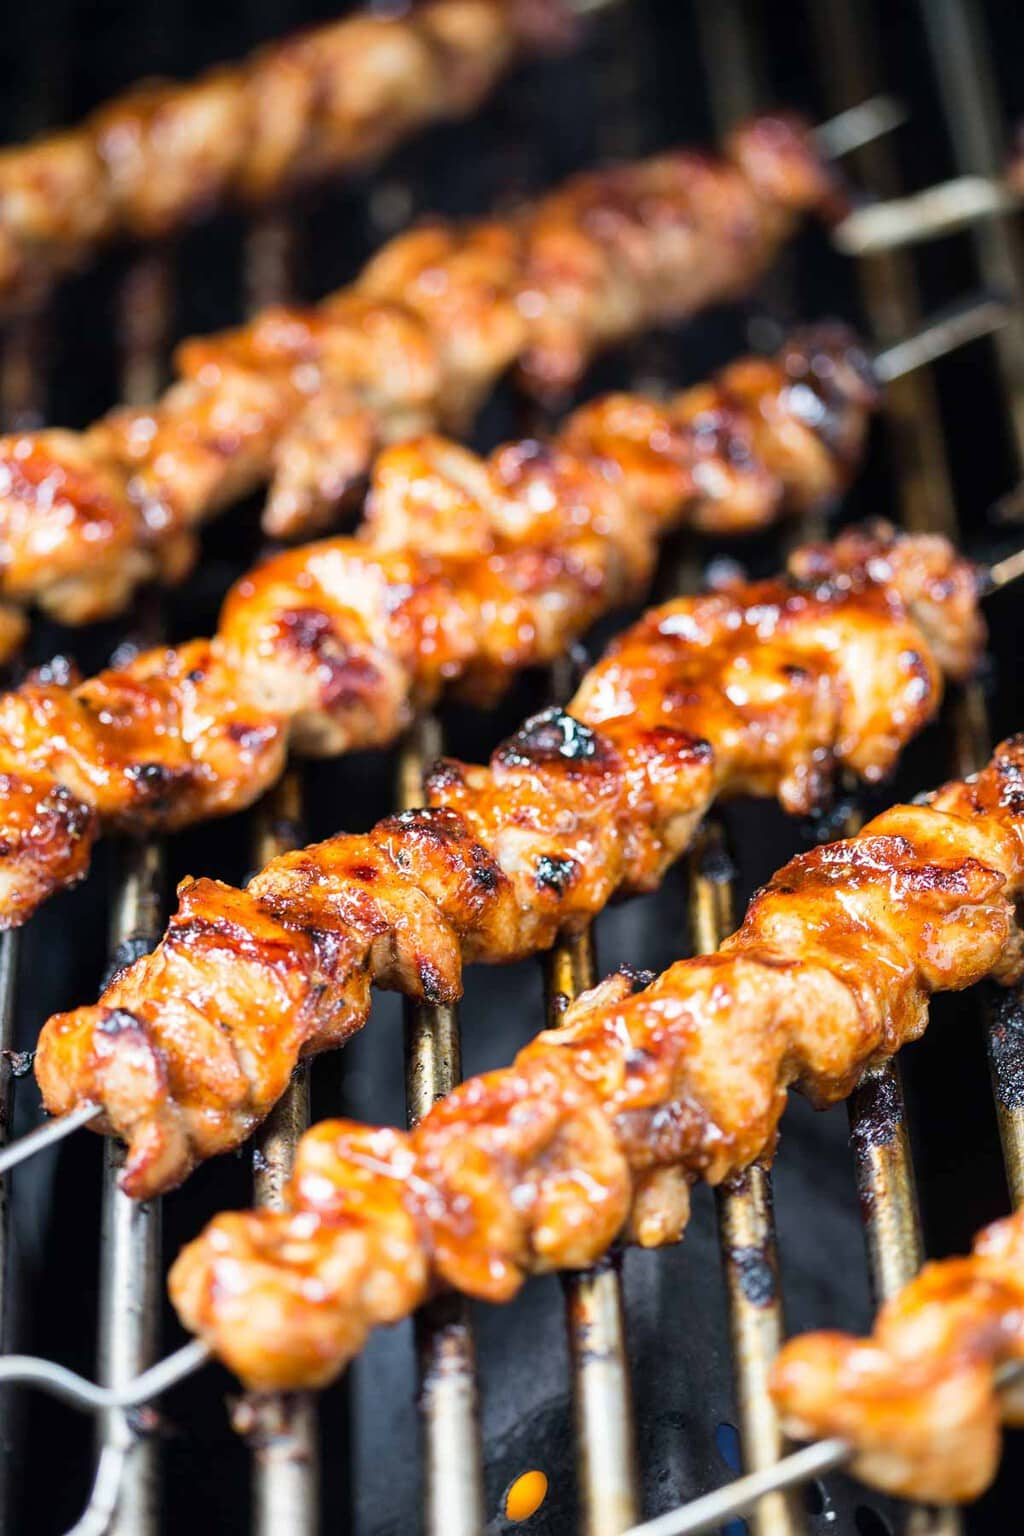 Closeup photo of Peruvian Grilled Chicken Skewers cooking on an outdoor grille.